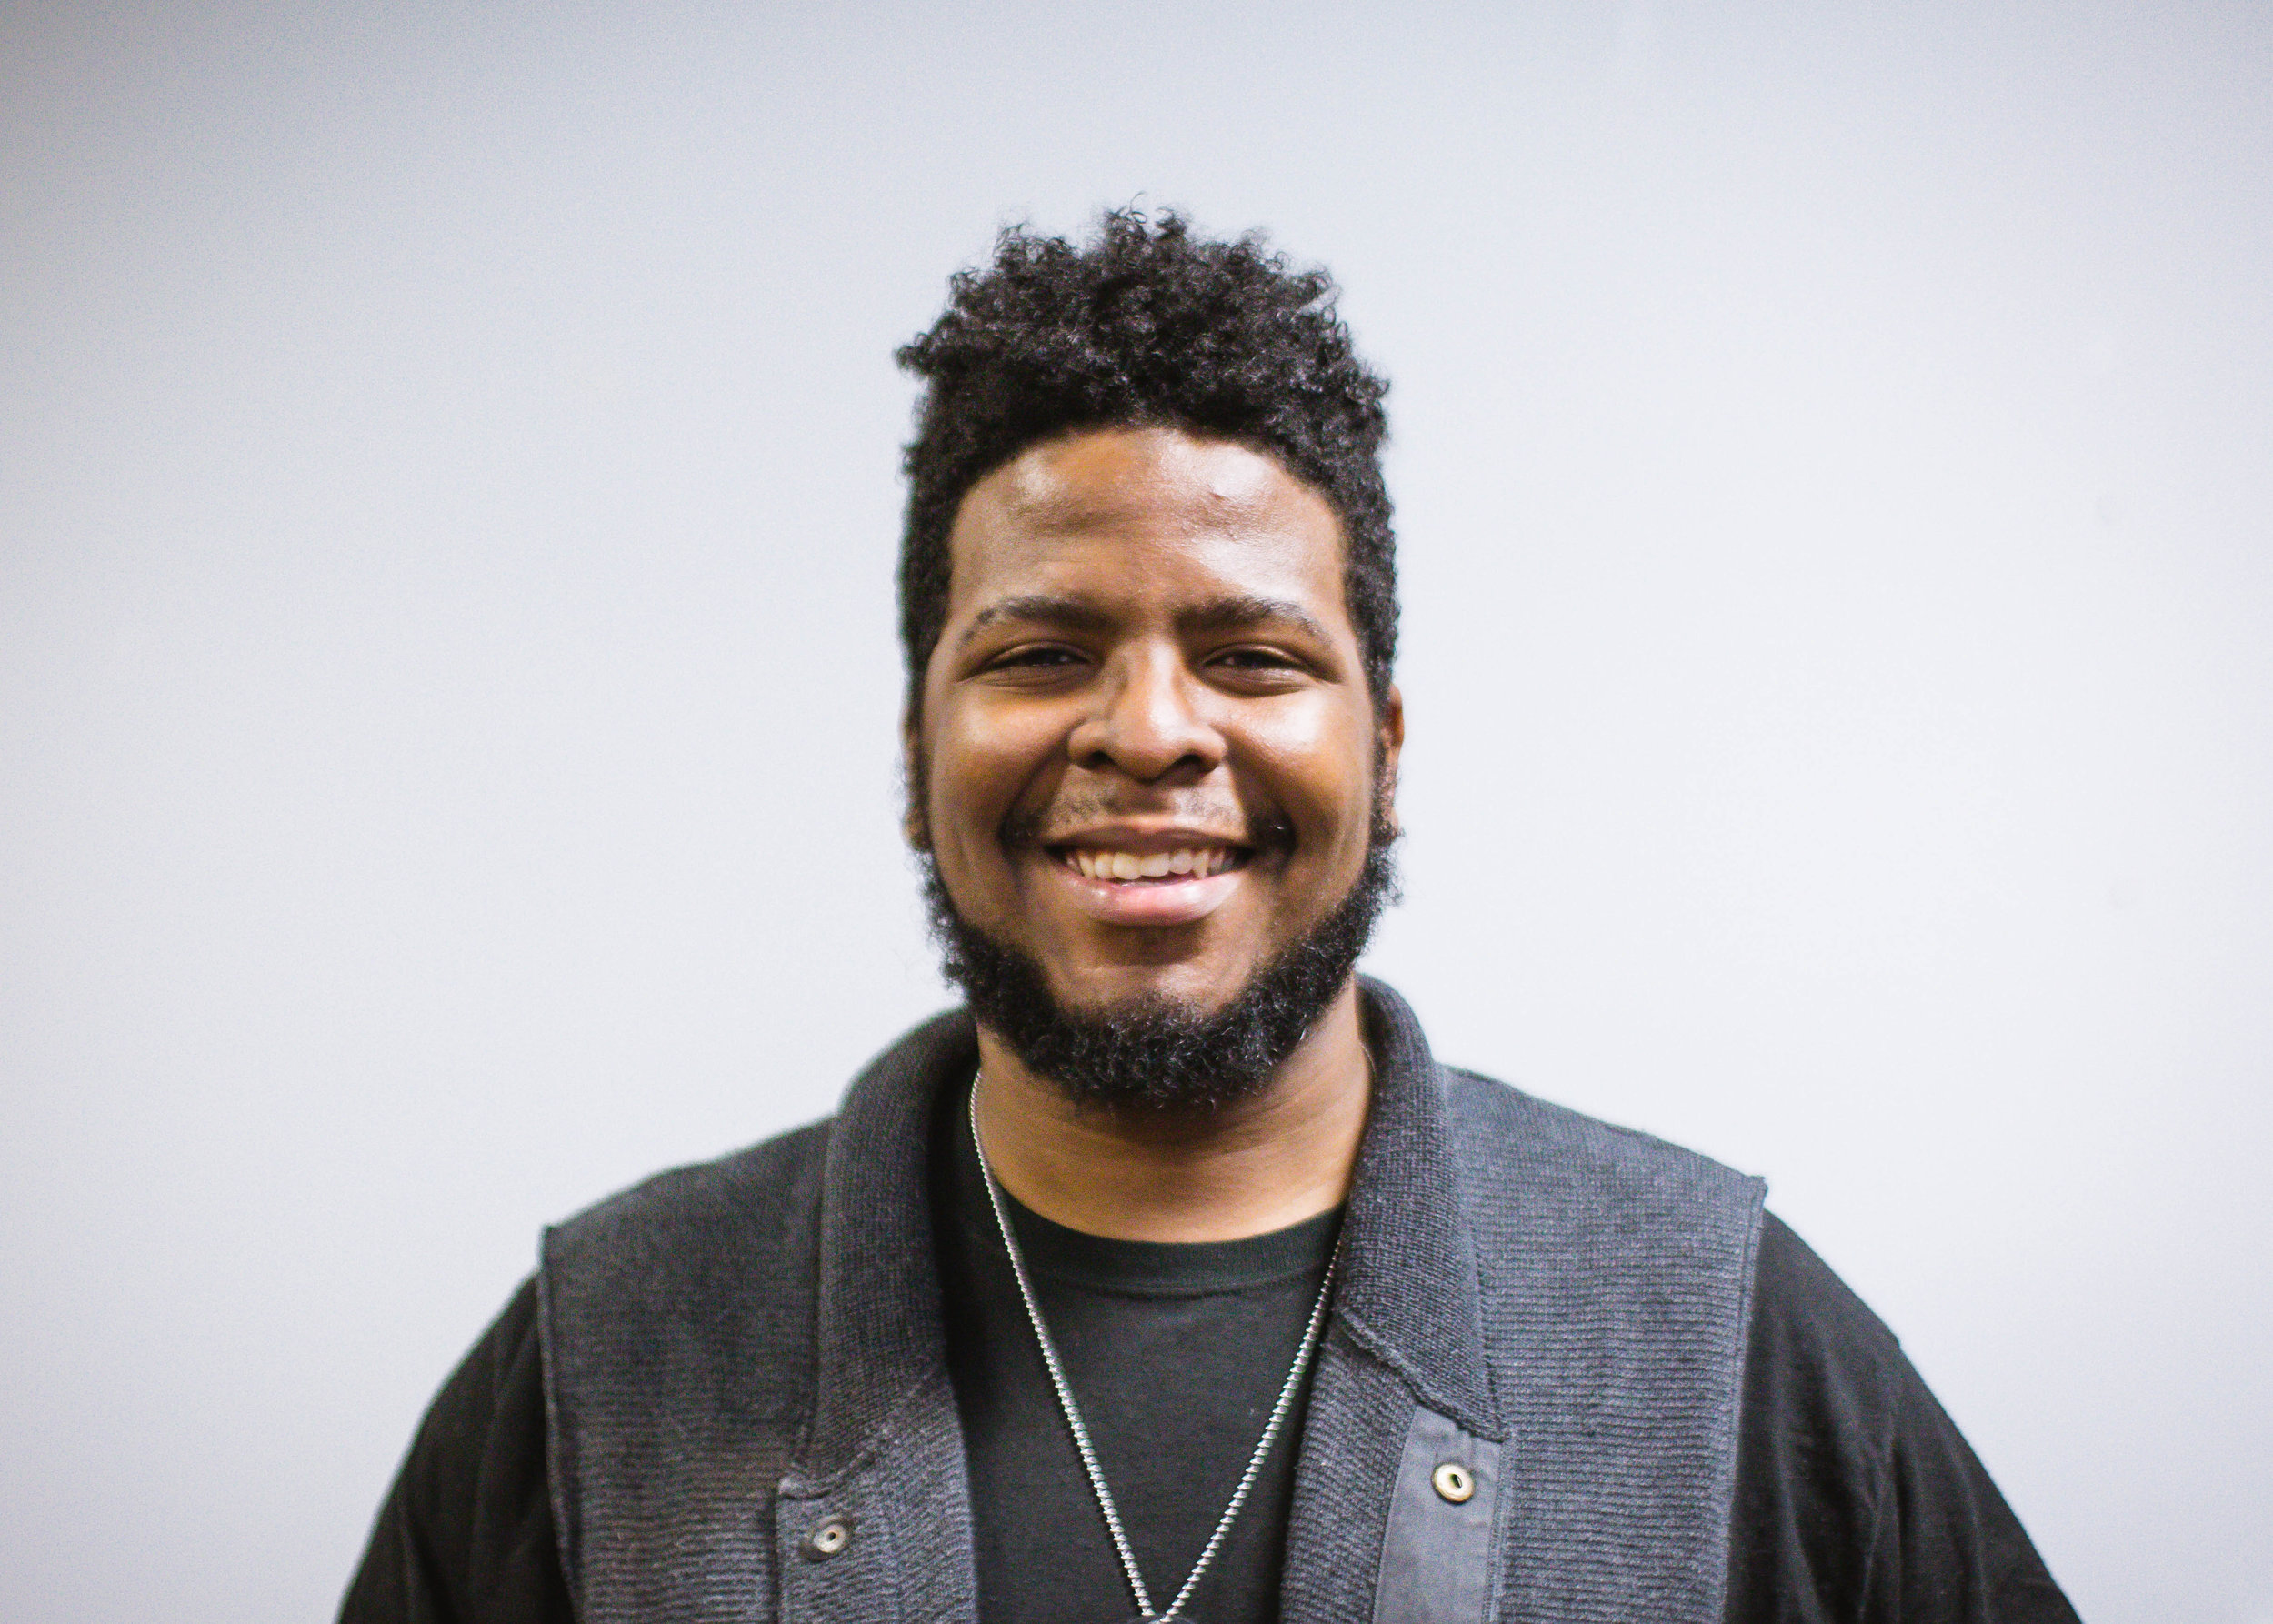 CHARLES REDDICK - What's up! My name is Charles and I'm the Worship Director here at New Hope. I'm a New York native, born and raised in Brooklyn before moving to Jamaica, Queens while attending Brooklyn High School of the Arts. During my high school career I developed a love for music, and gave my life to Jesus. In 2012, I felt the Lord's call to multicultural and urban youth ministry and soon after went on staff for Young Life in Jamaica, Queens where I serve in urban youth ministry today. I also currently work as a singer for an entertainment company in Manhattan, where I've been able to sing backup for artists such as Justin Timberlake, Brandy, and Jennifer Hudson.